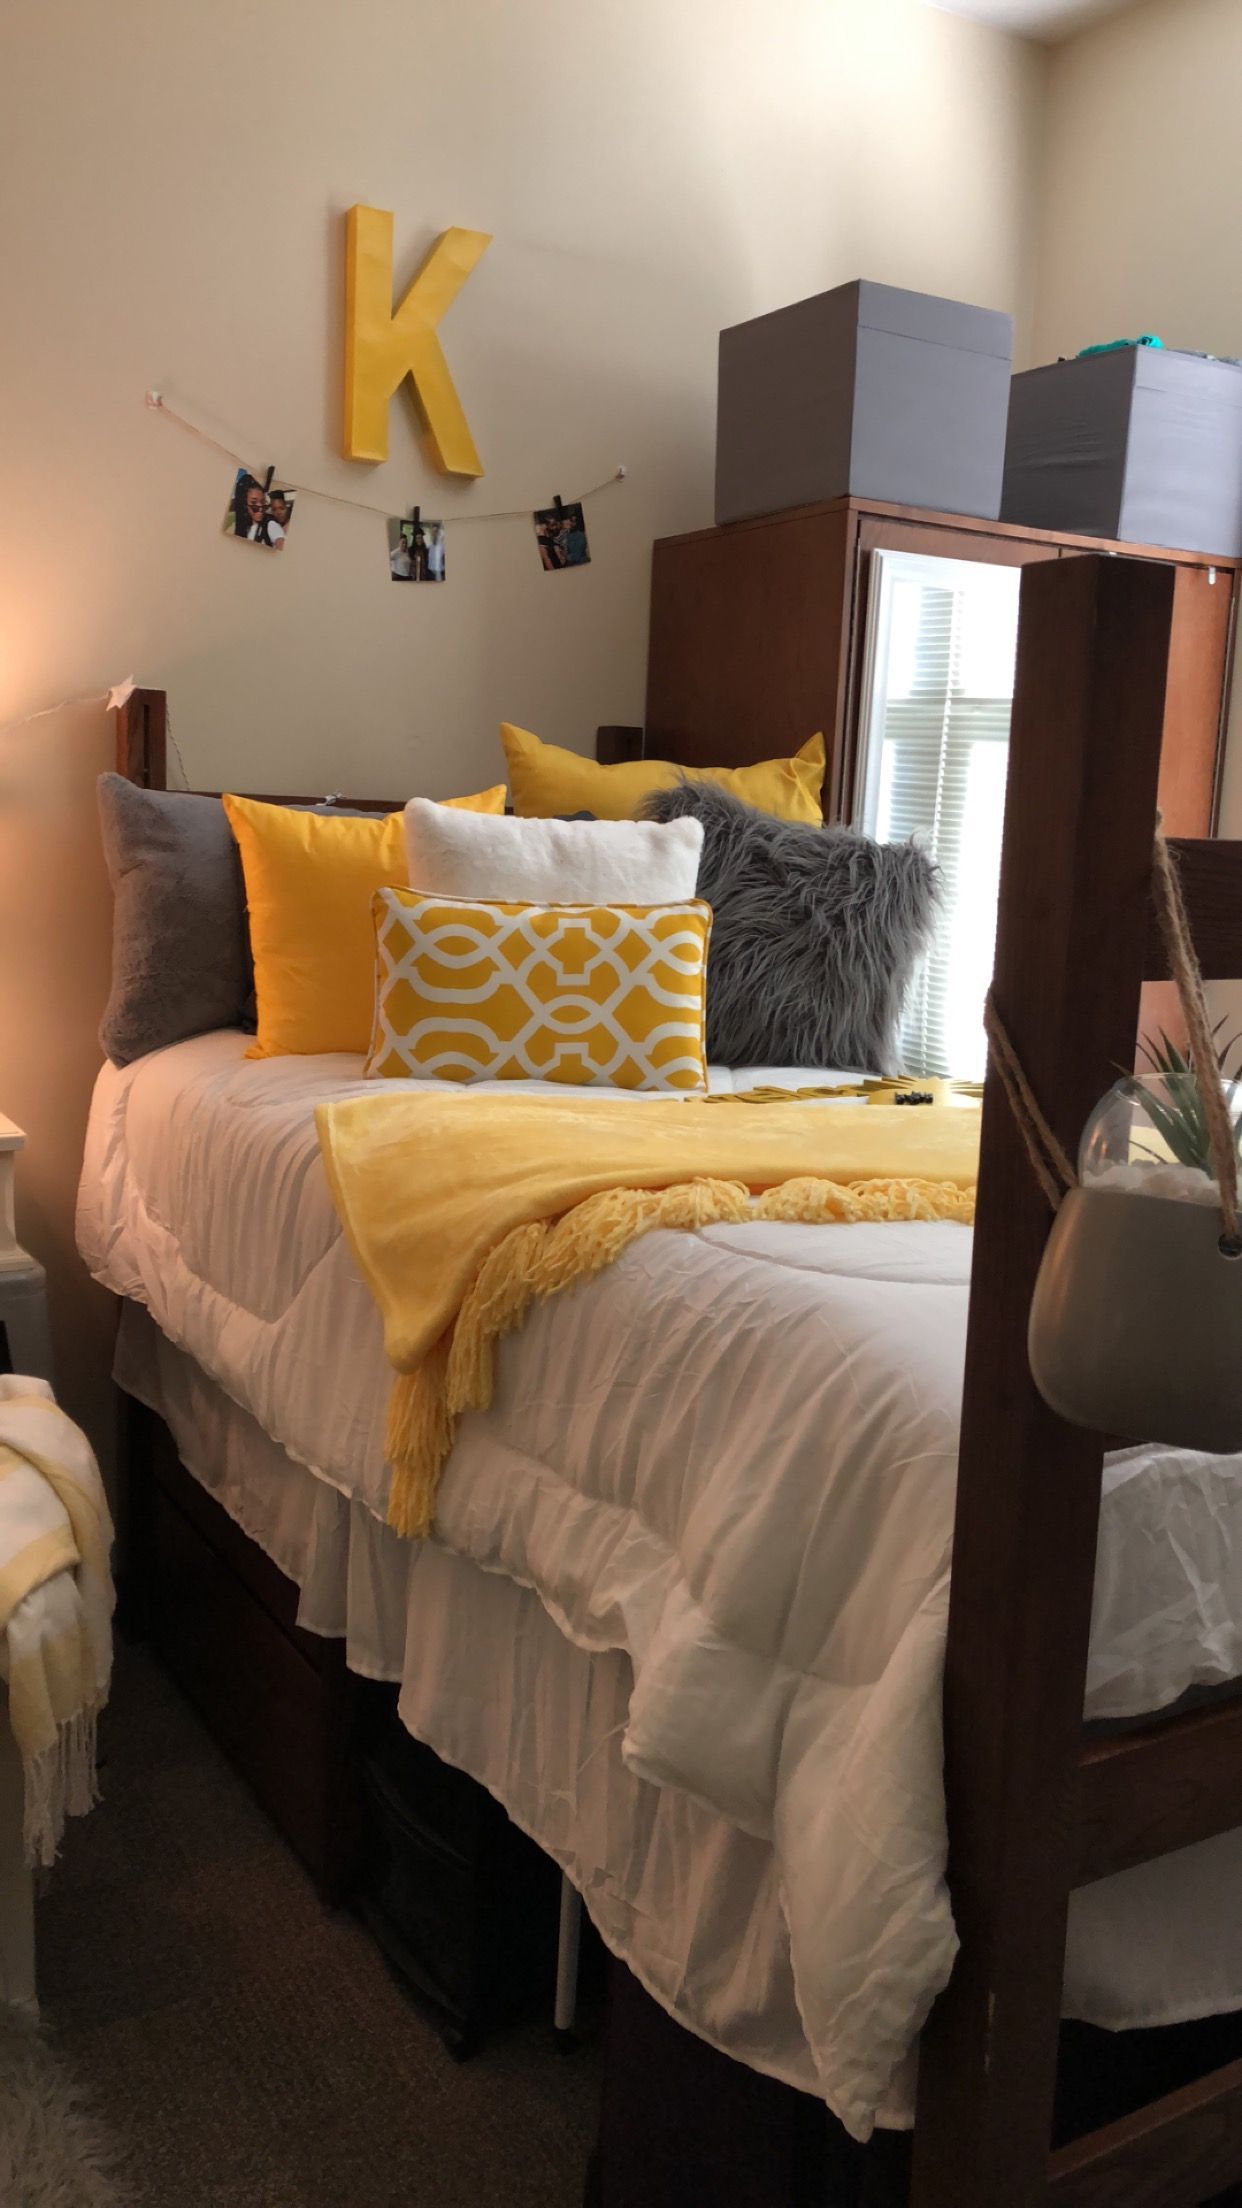 Dorm Room Styles: Dorm Room Designs, Dorm Room